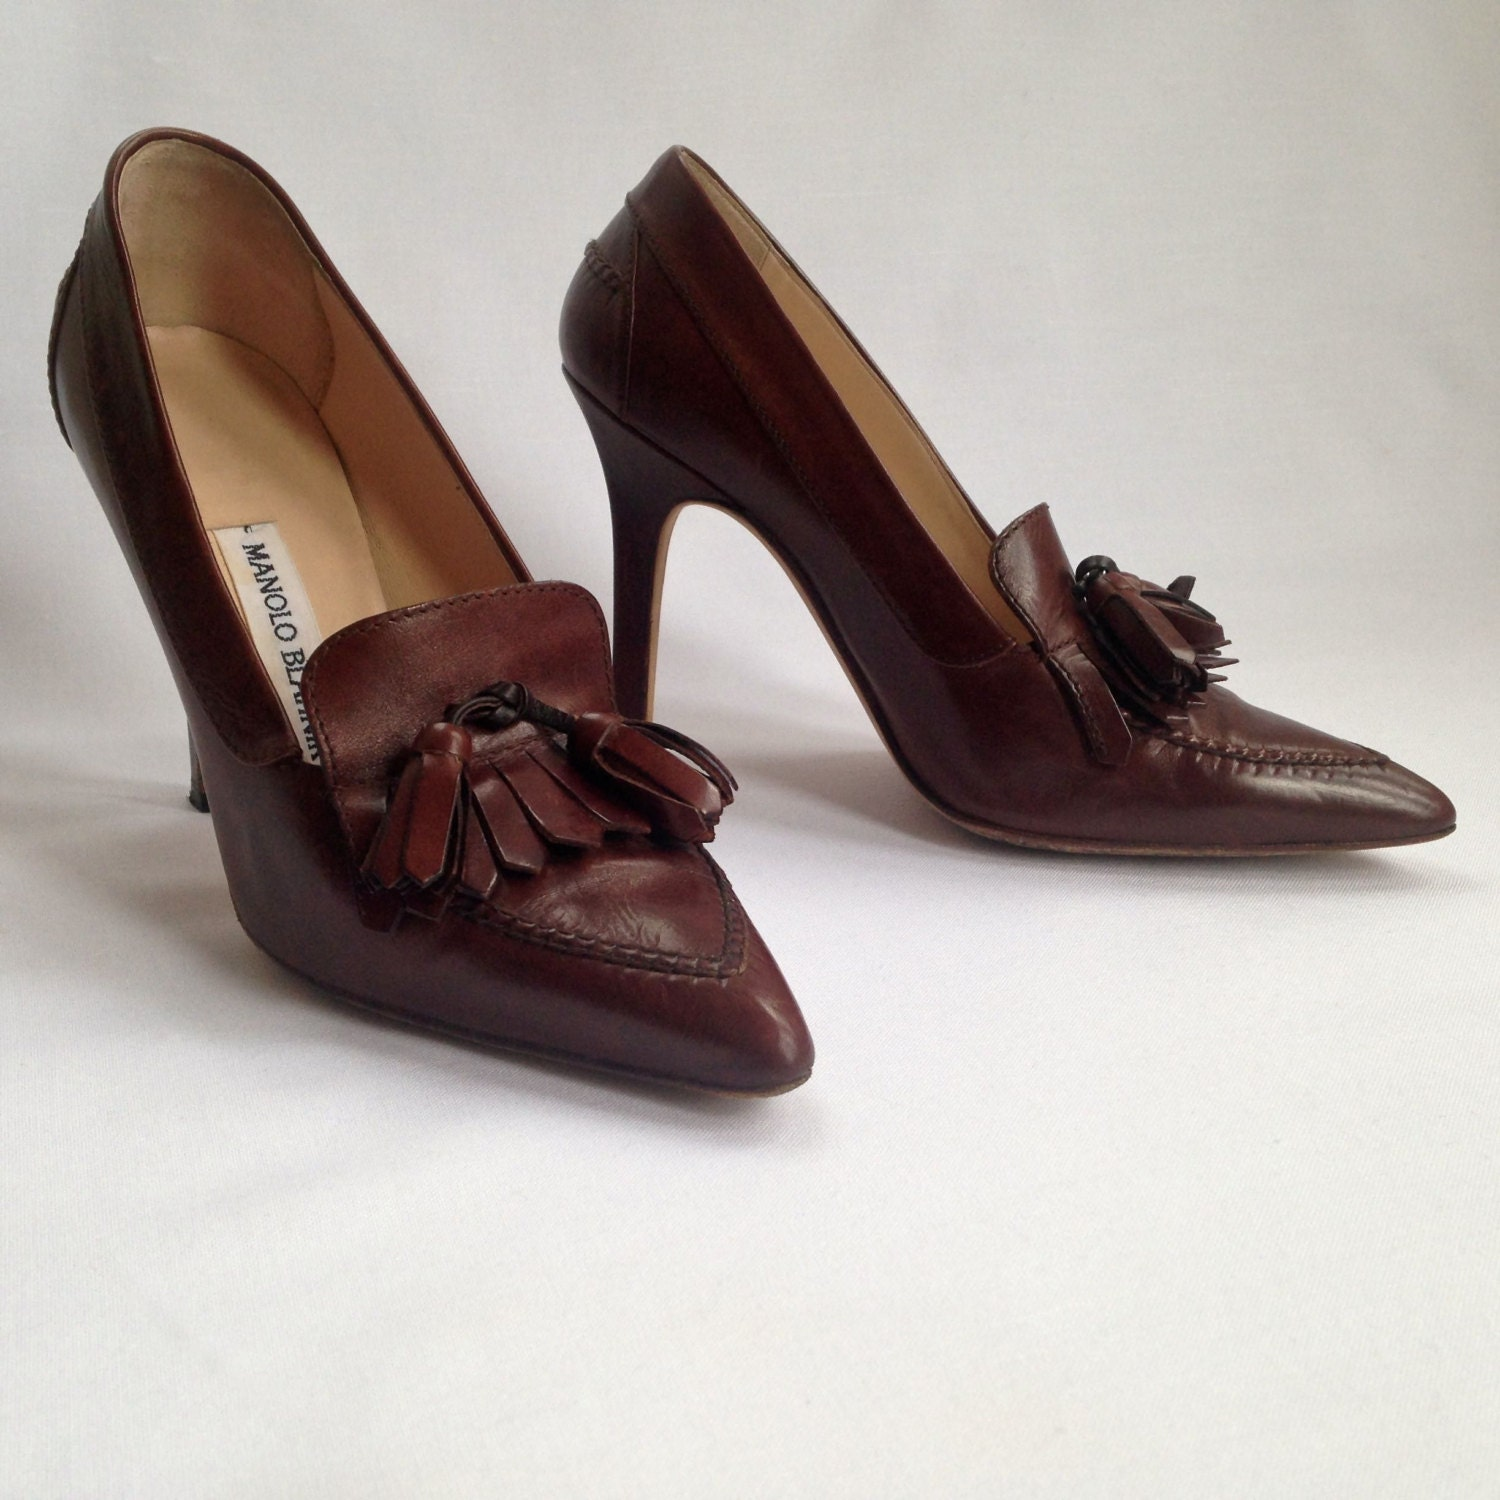 Sale signed manolo blahnik shoes king of stilettos for Shoes by manolo blahnik